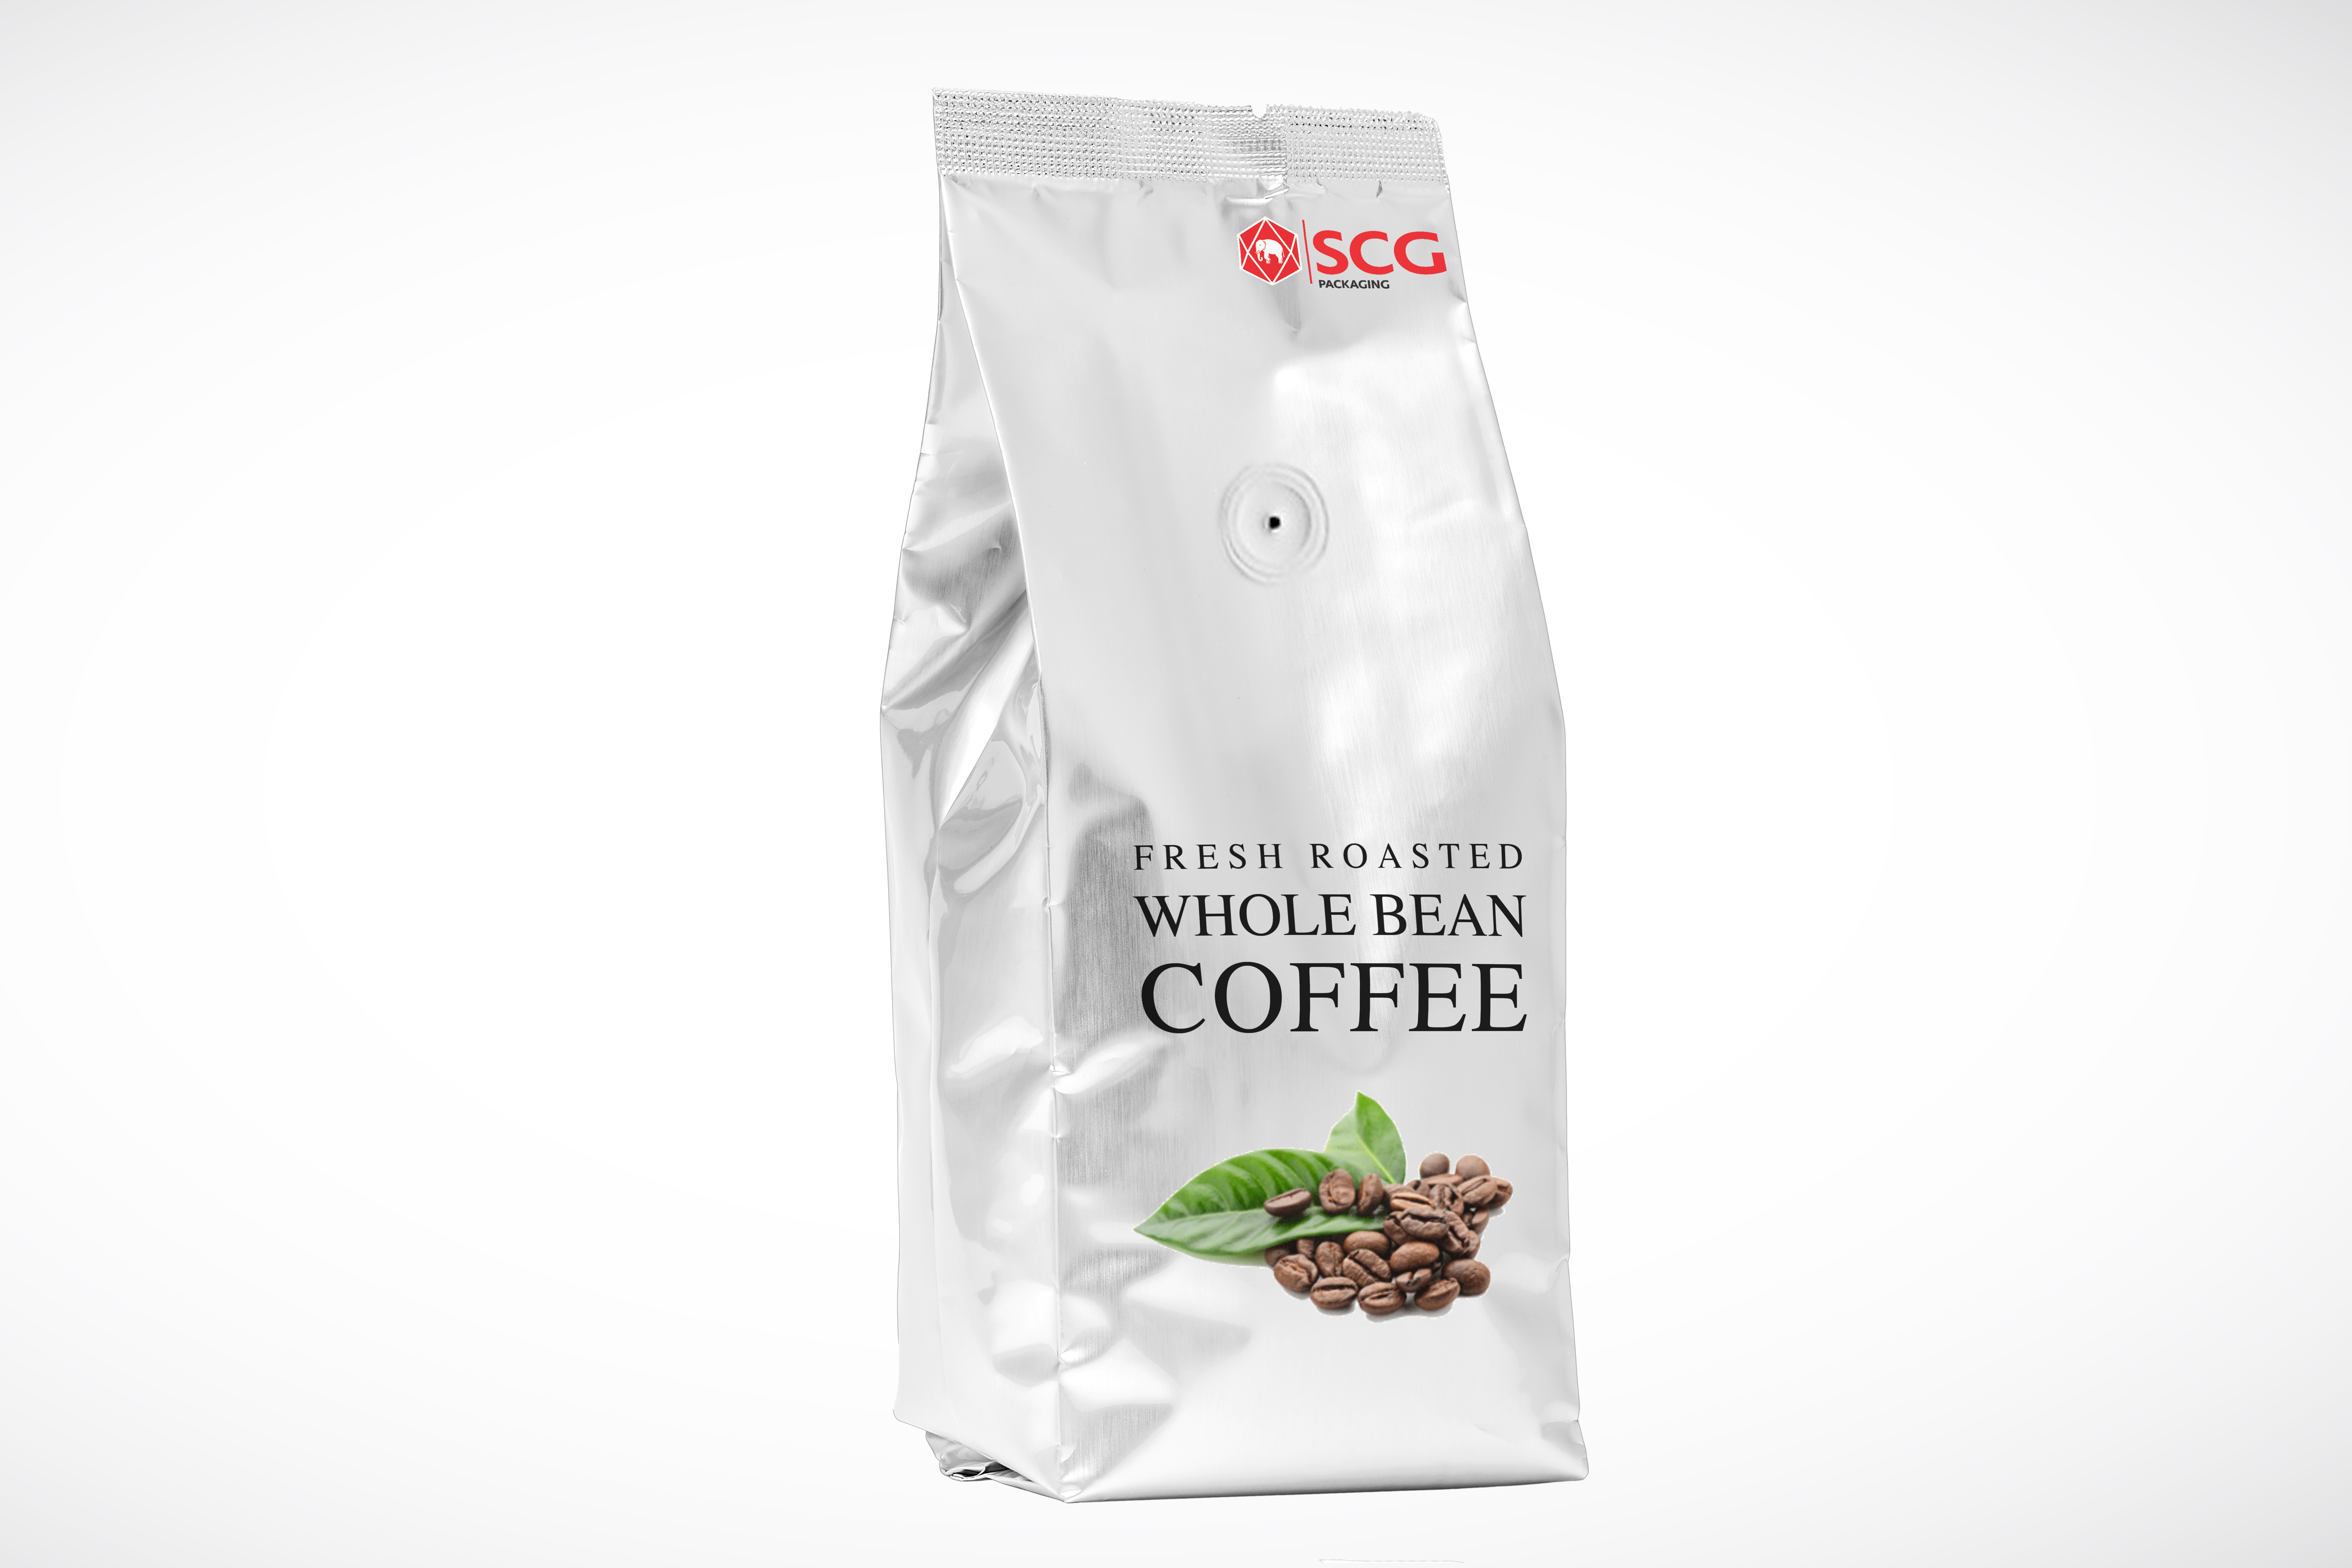 MORNING ROAST COFFEE POUCH